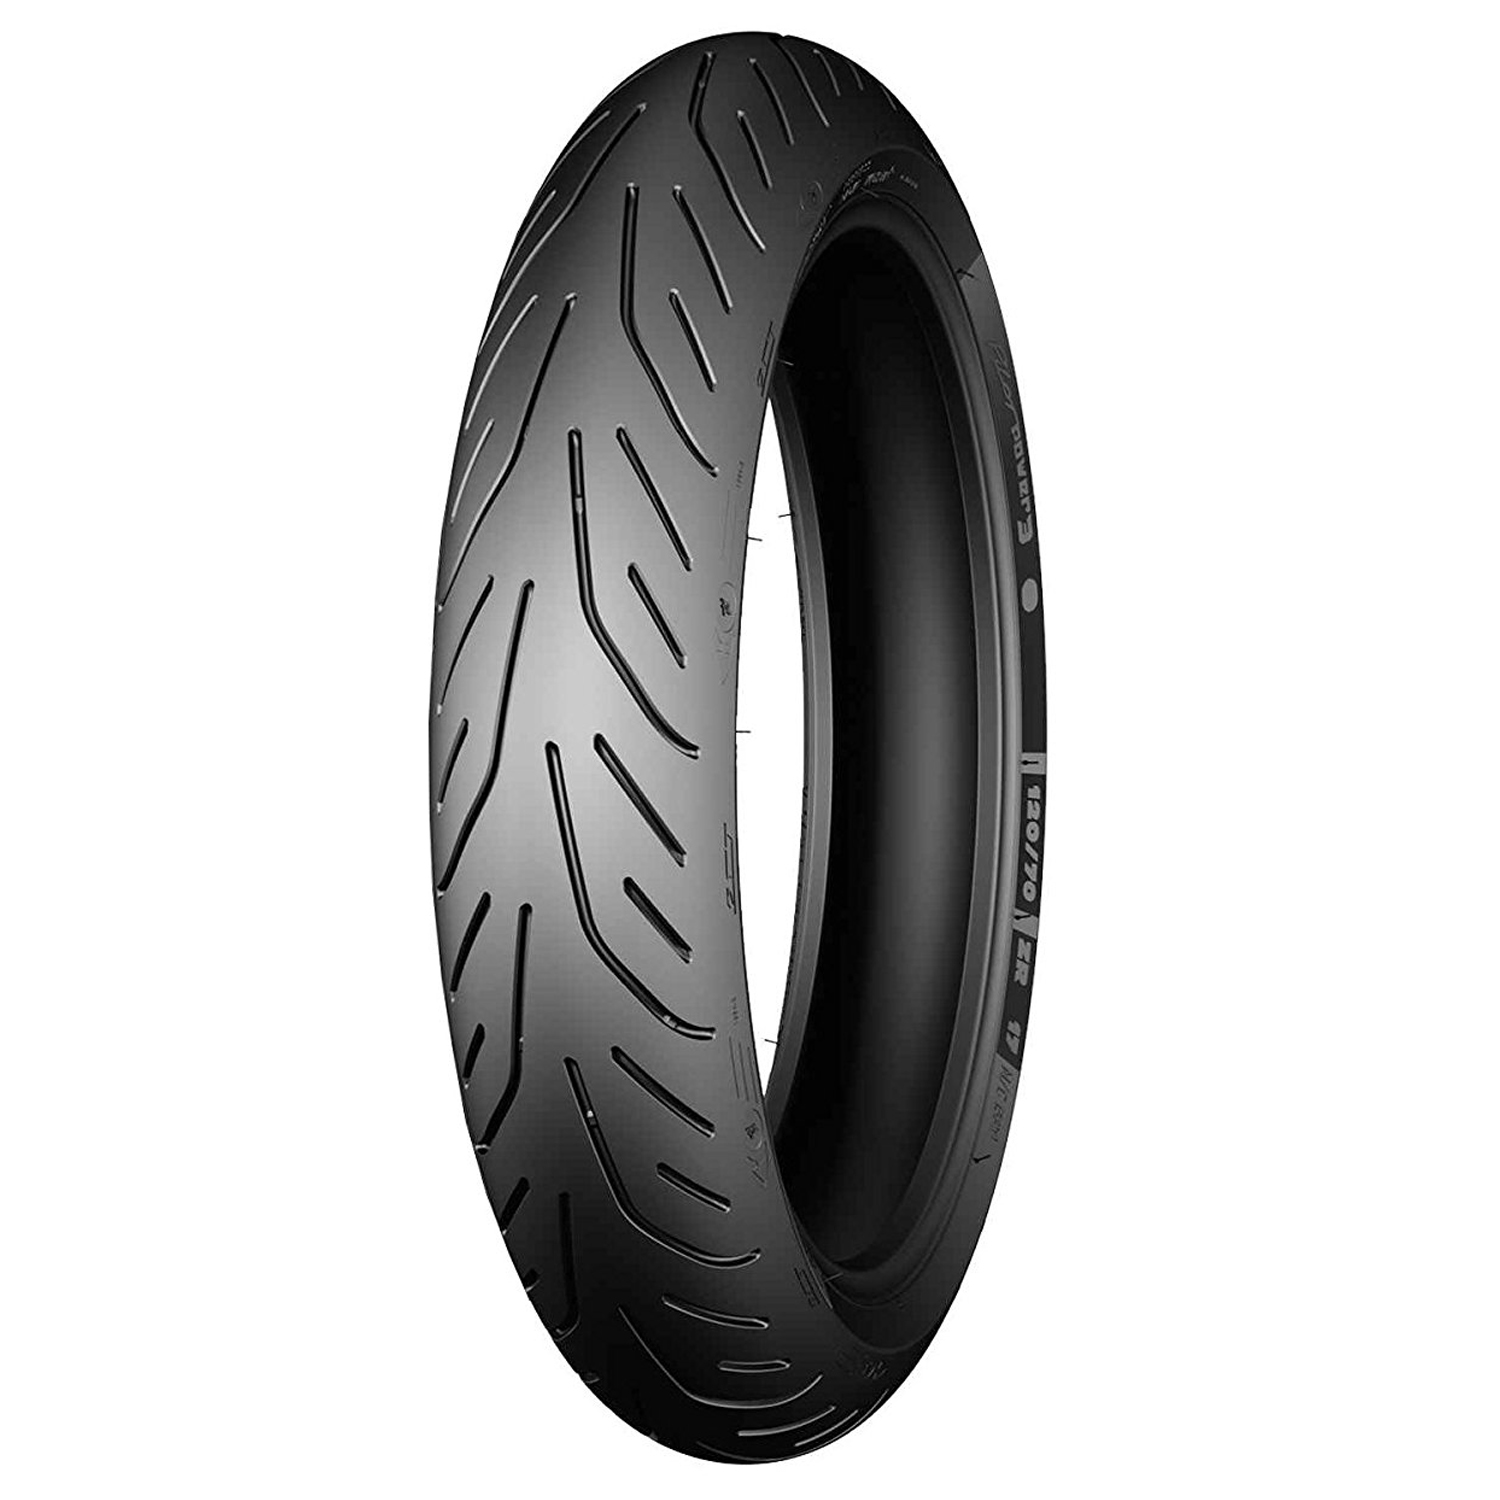 Michelin PILOT POWER 3 120/70 ZR17 Tubeless 58 W Front Two-Wheeler Tyre